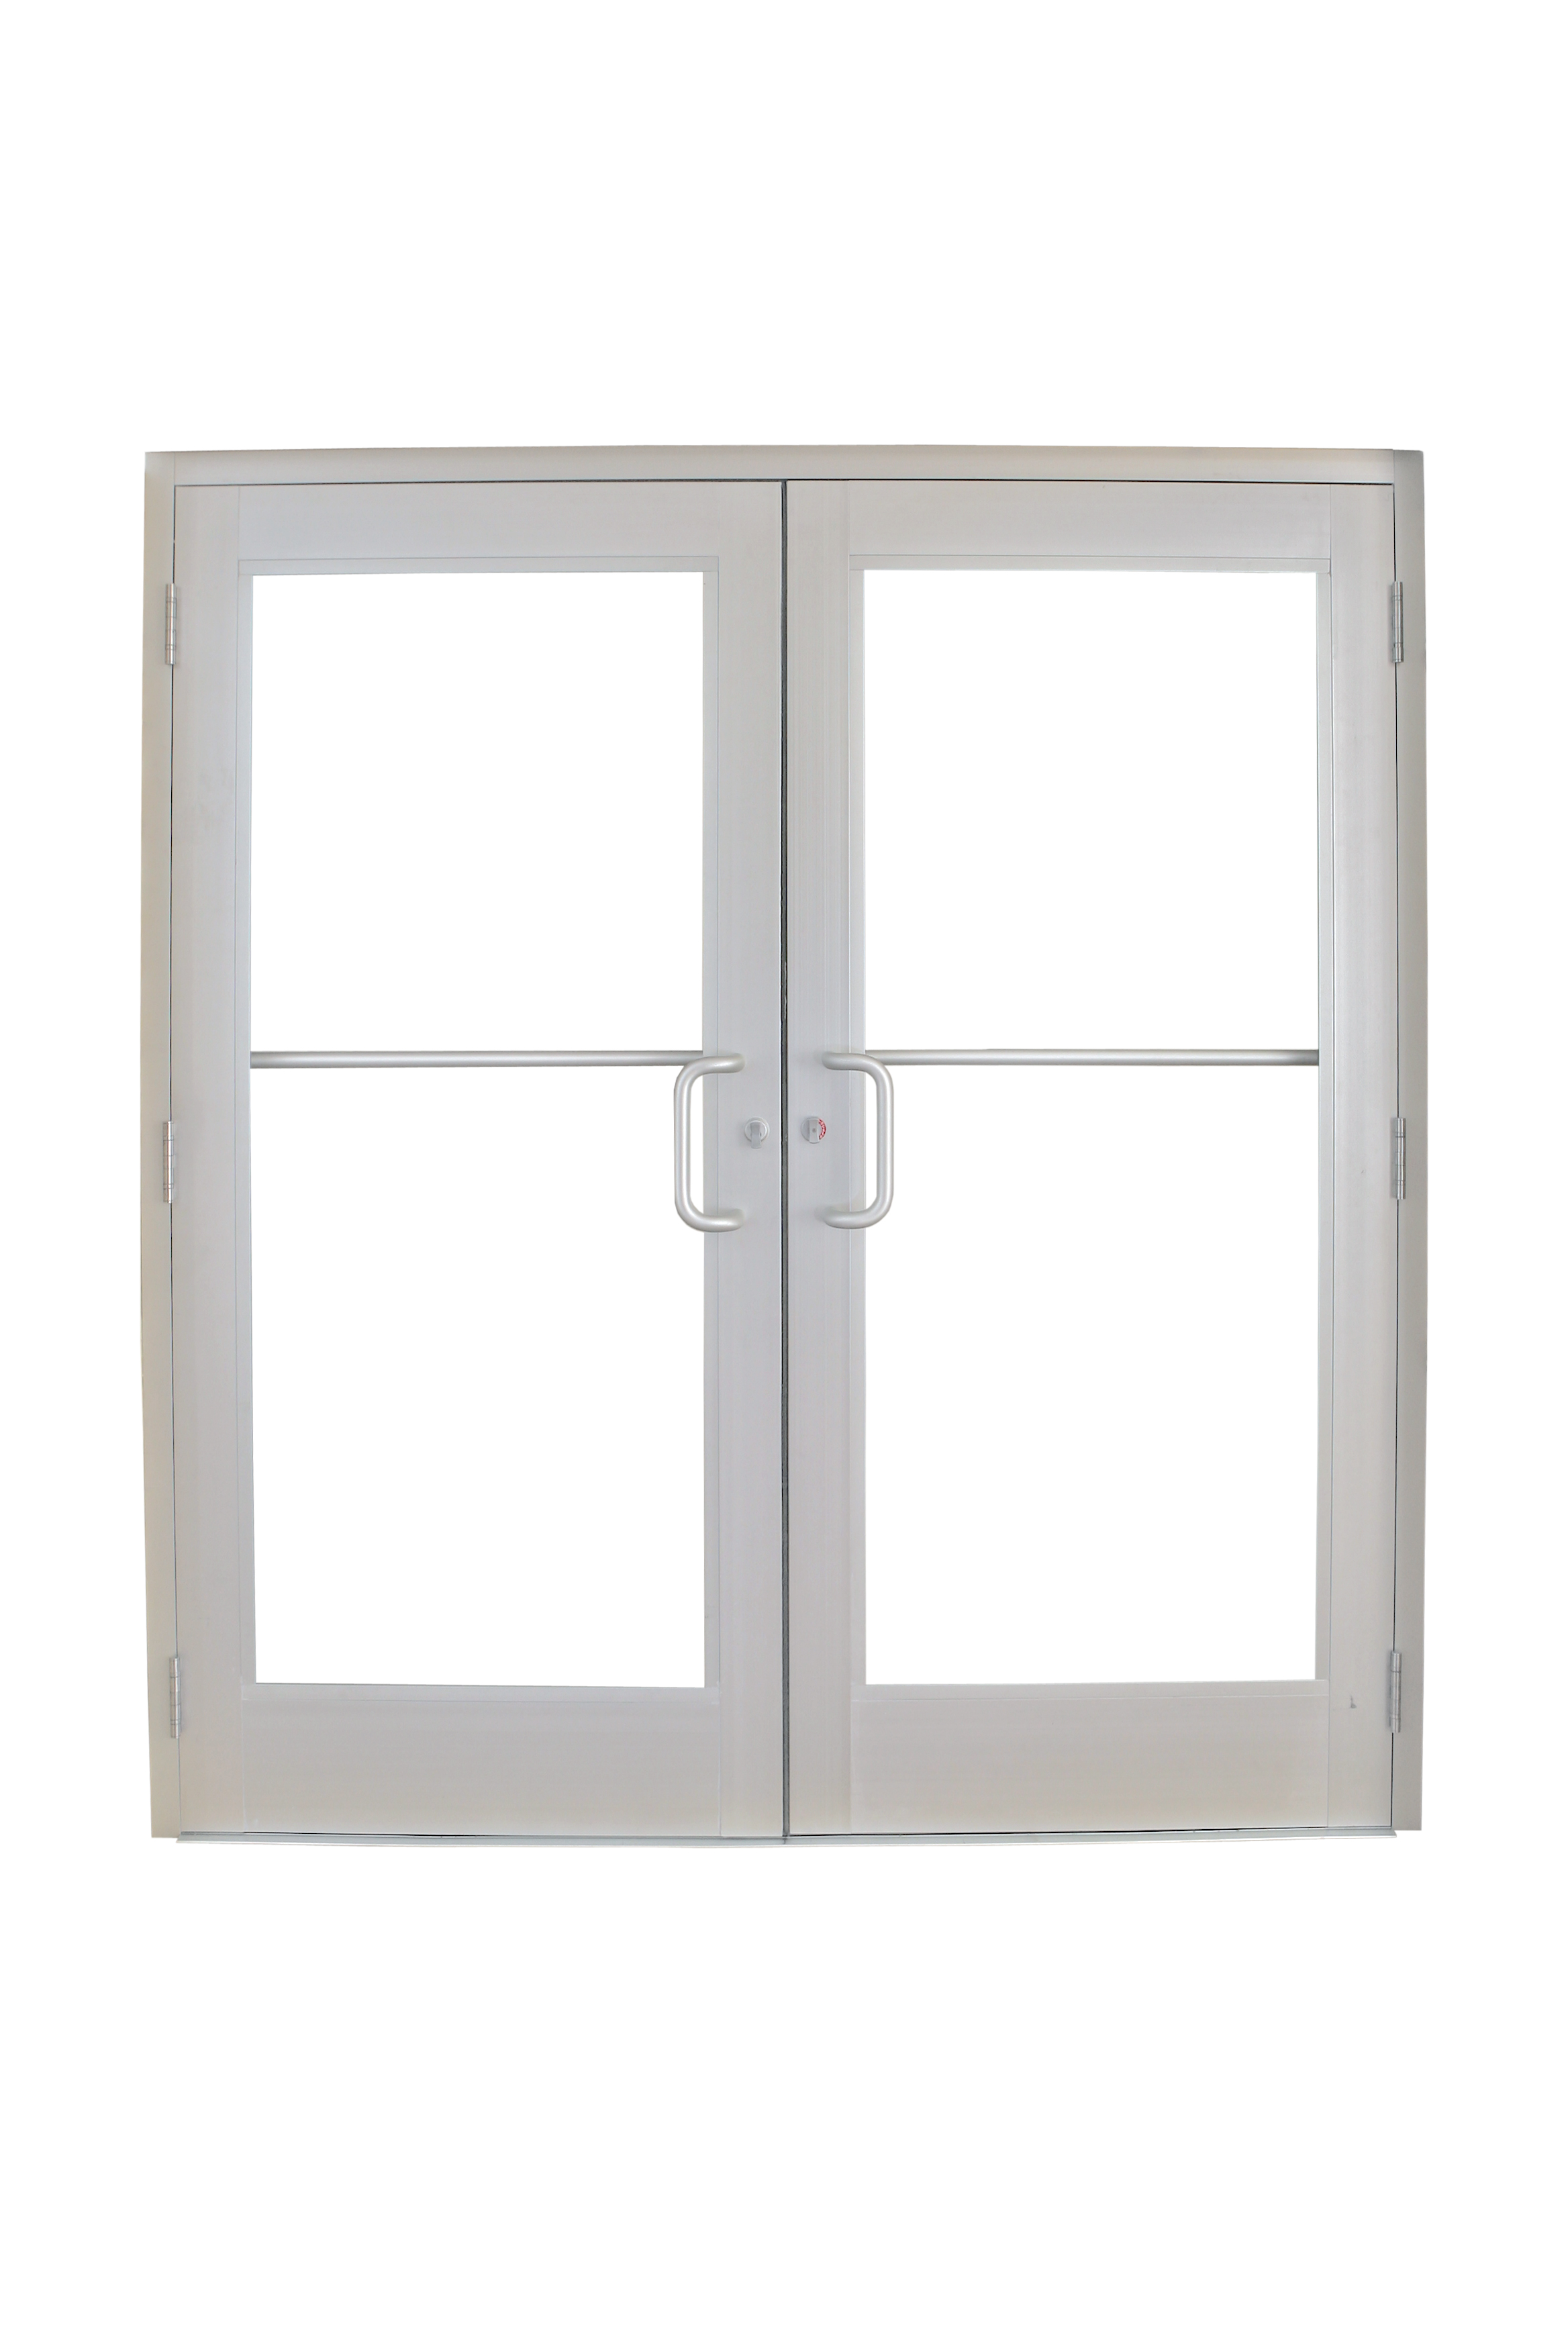 Pics for commercial glass double doors for Commercial entry doors